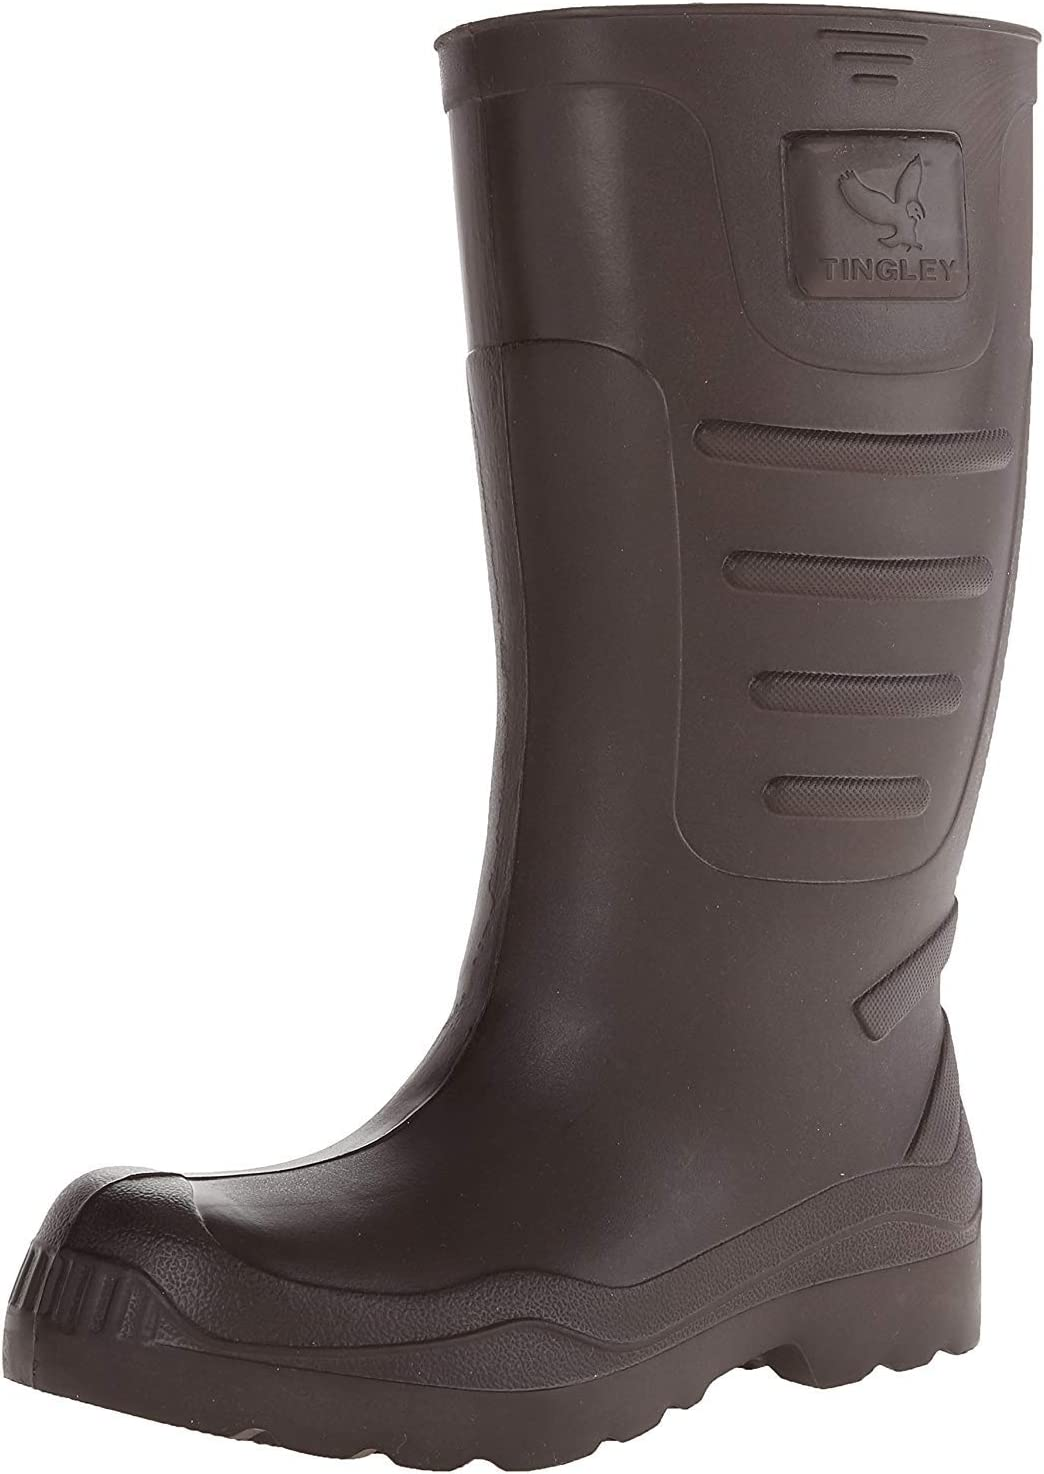 """PR Brown 15/"""" Height Plain Size  12 TINGLEY 21144 Airgo Boots"""